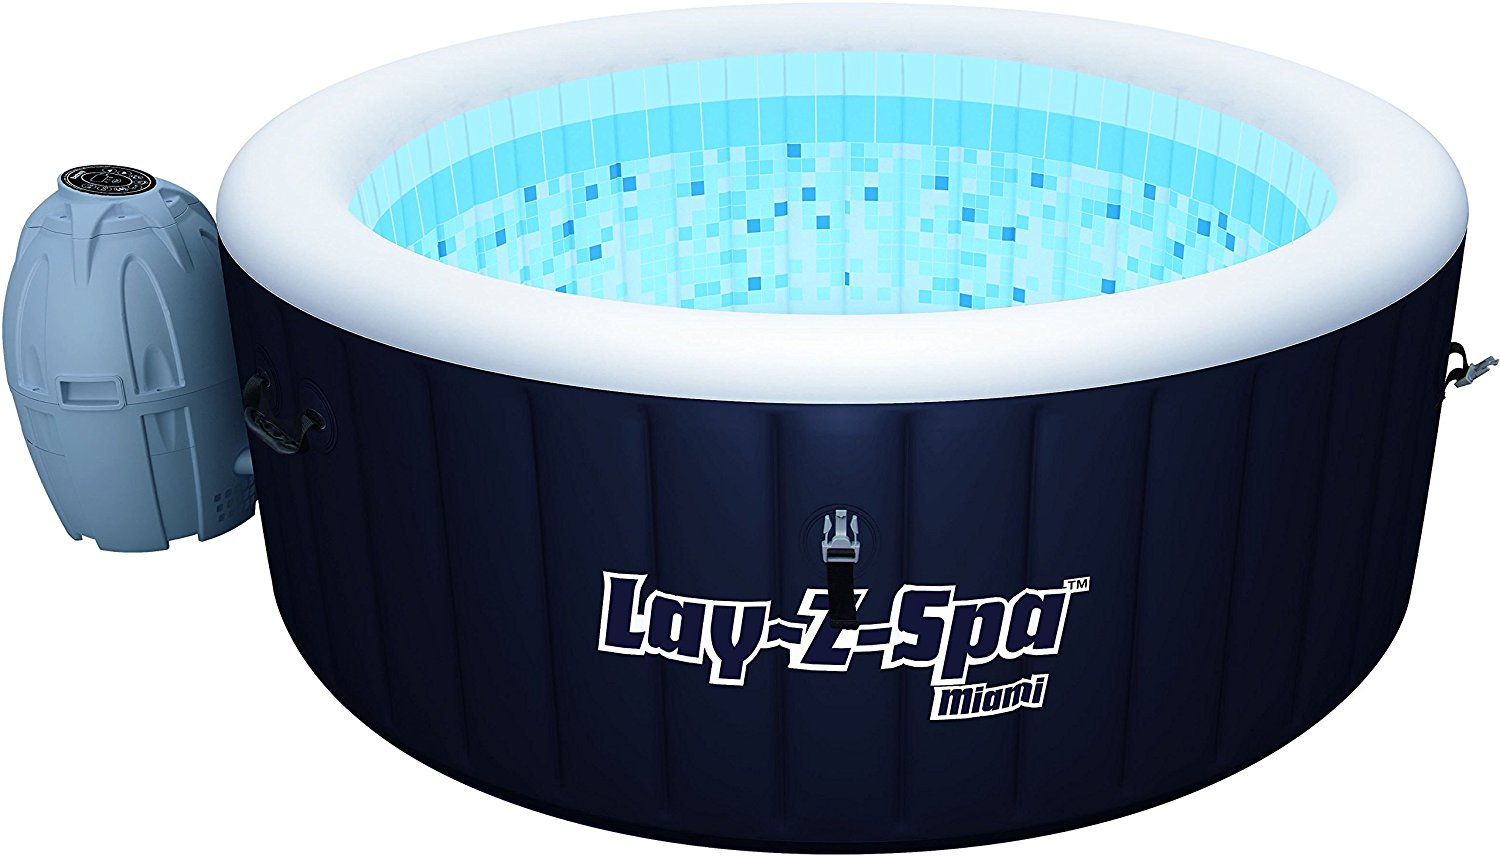 Zwembad Warmtepomp Panasonic New Bestway Lay Z Spa Miami Round Inflatable Hot Tub 2 4